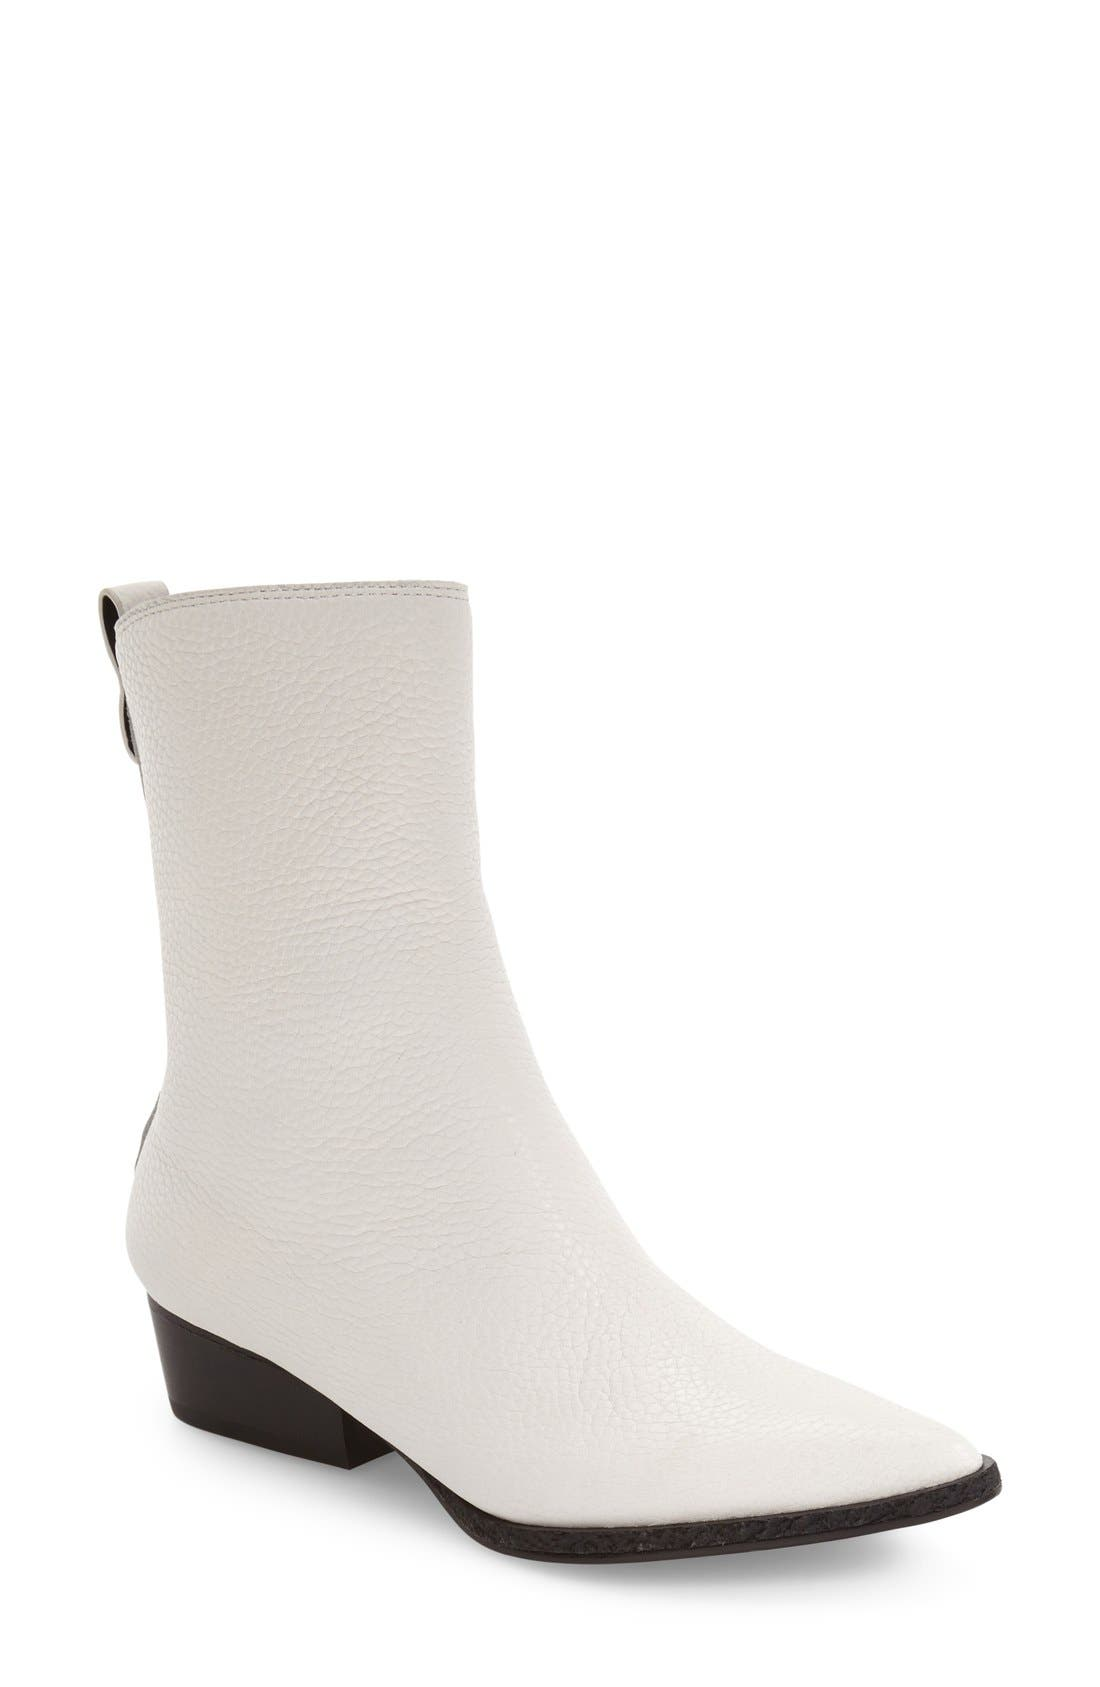 Kiki Pointy Toe Bootie,                         Main,                         color, White Leather